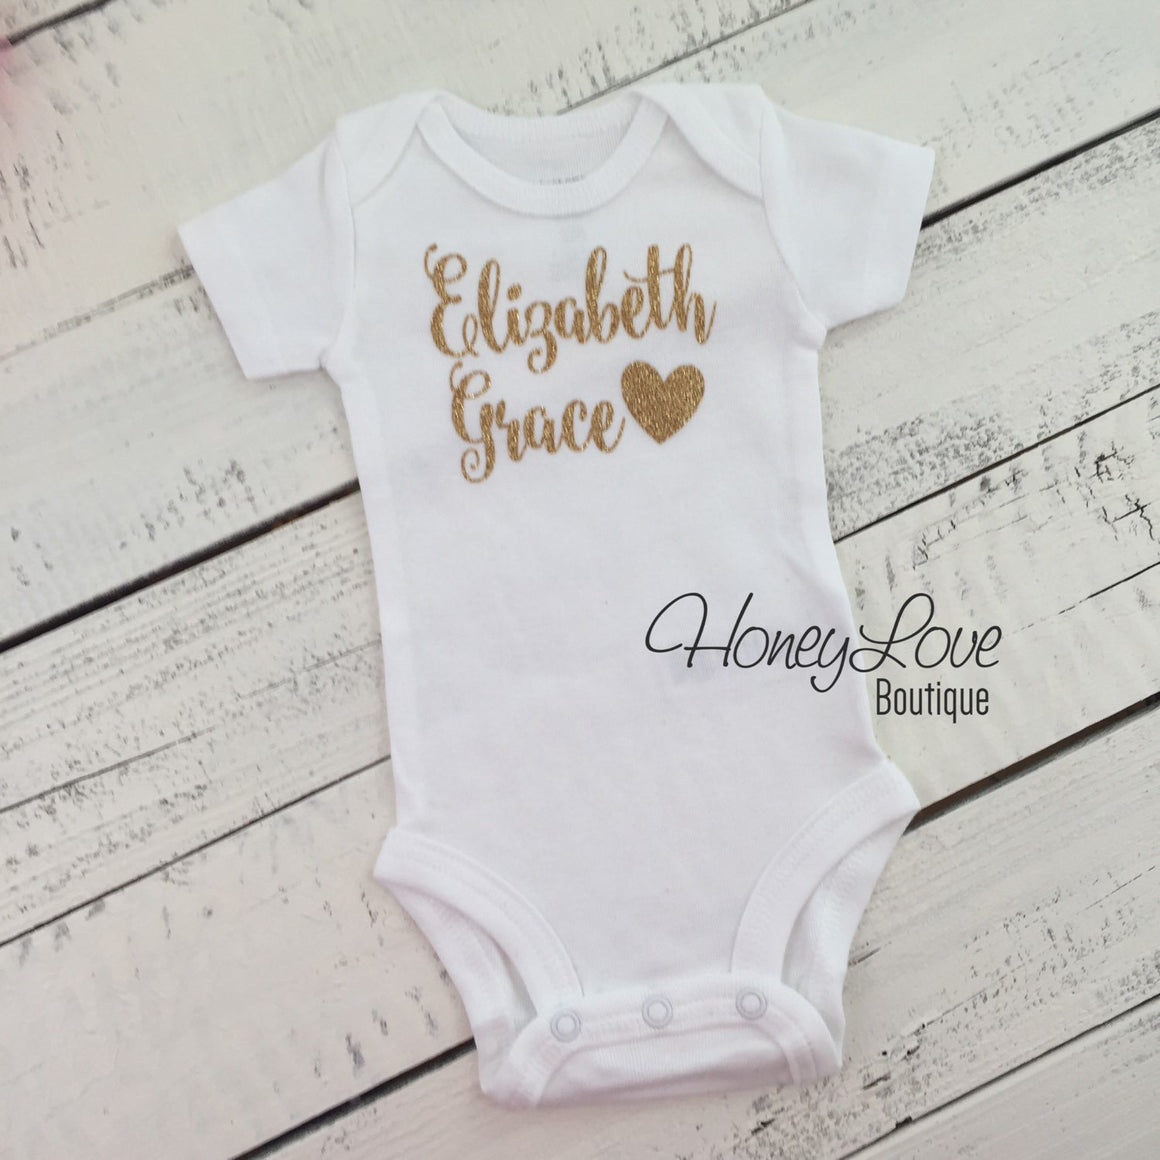 Personalized Name with Heart - Silver/Gold Glitter